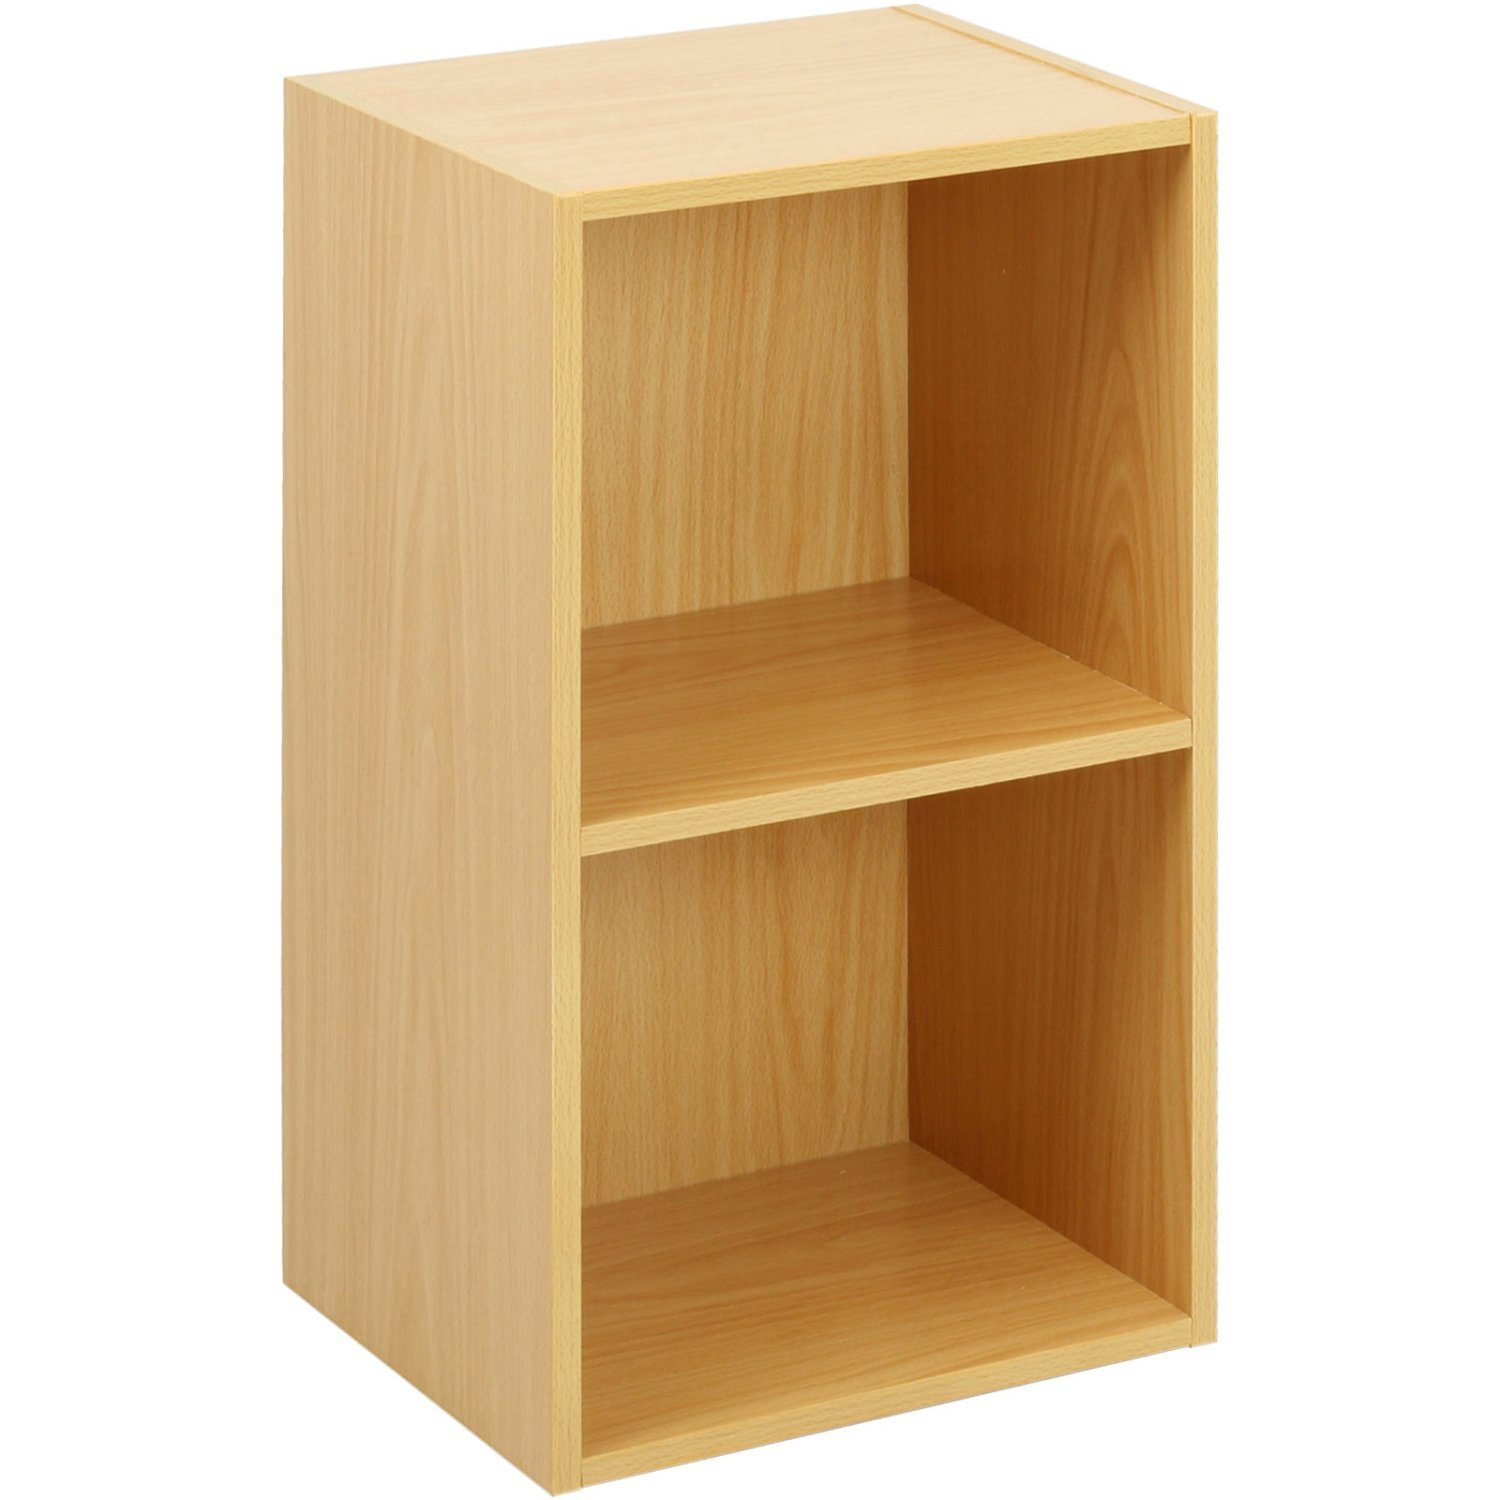 rack wood storage units duty shelving plywood buy making home shelves diy garage cabinets heavy metal